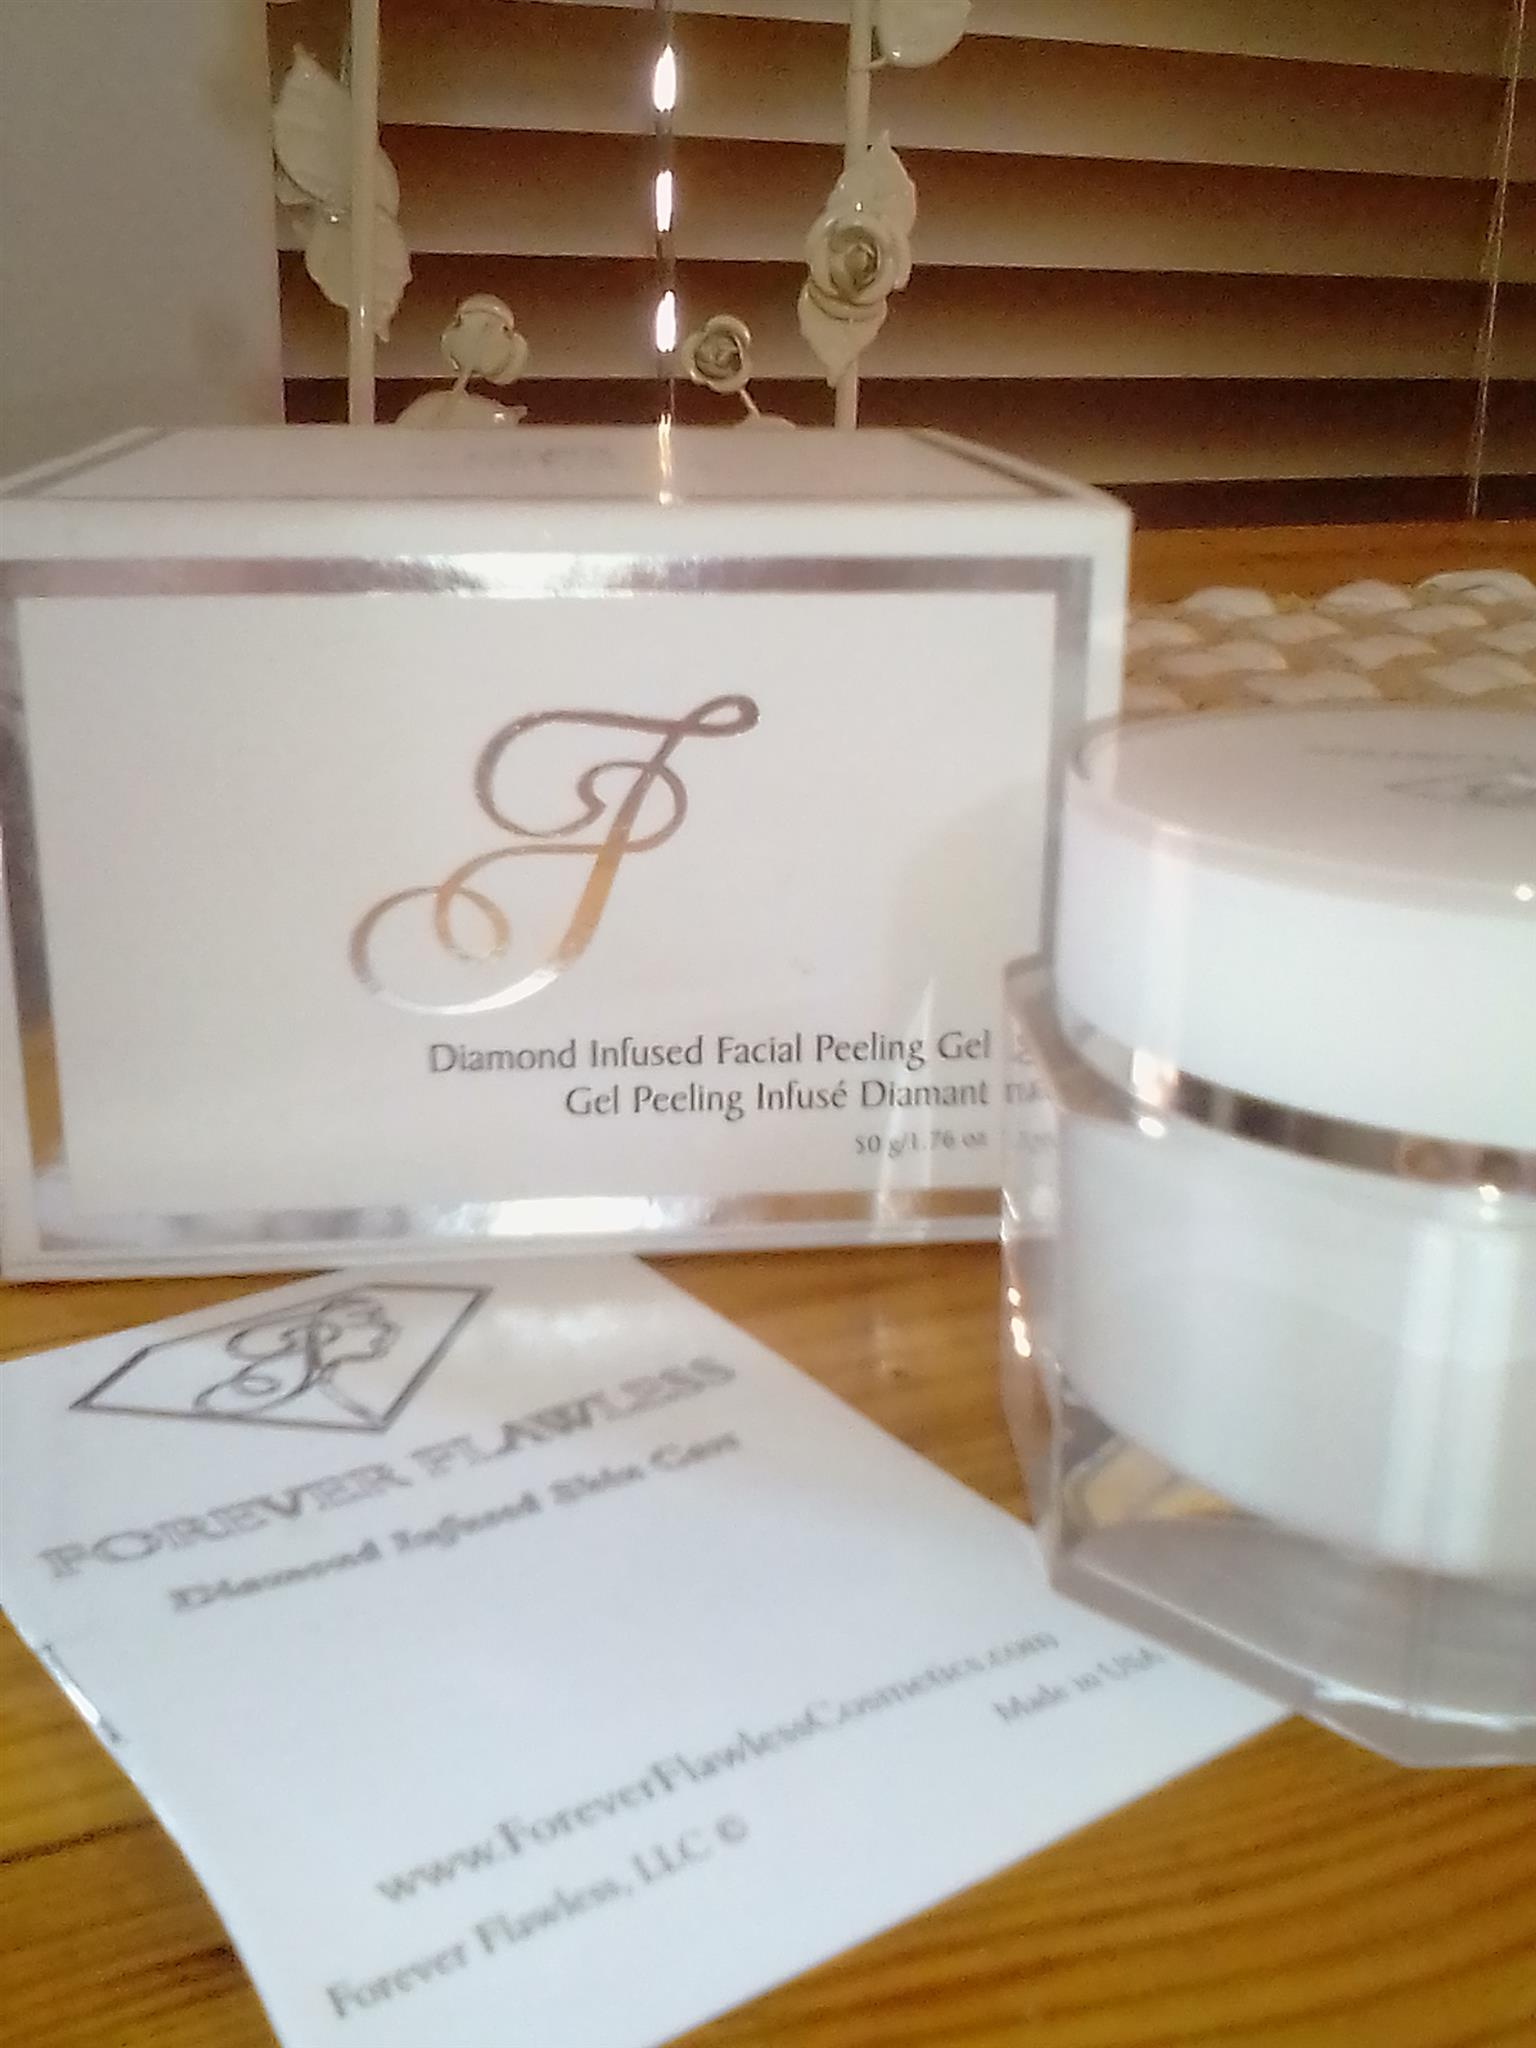 FOREVER FLAWLESS FACIAL PEELING GEL WITH 100% NATURAL WHITE DIAMOND INFUSED POWDER BEST EXFOLIATOR